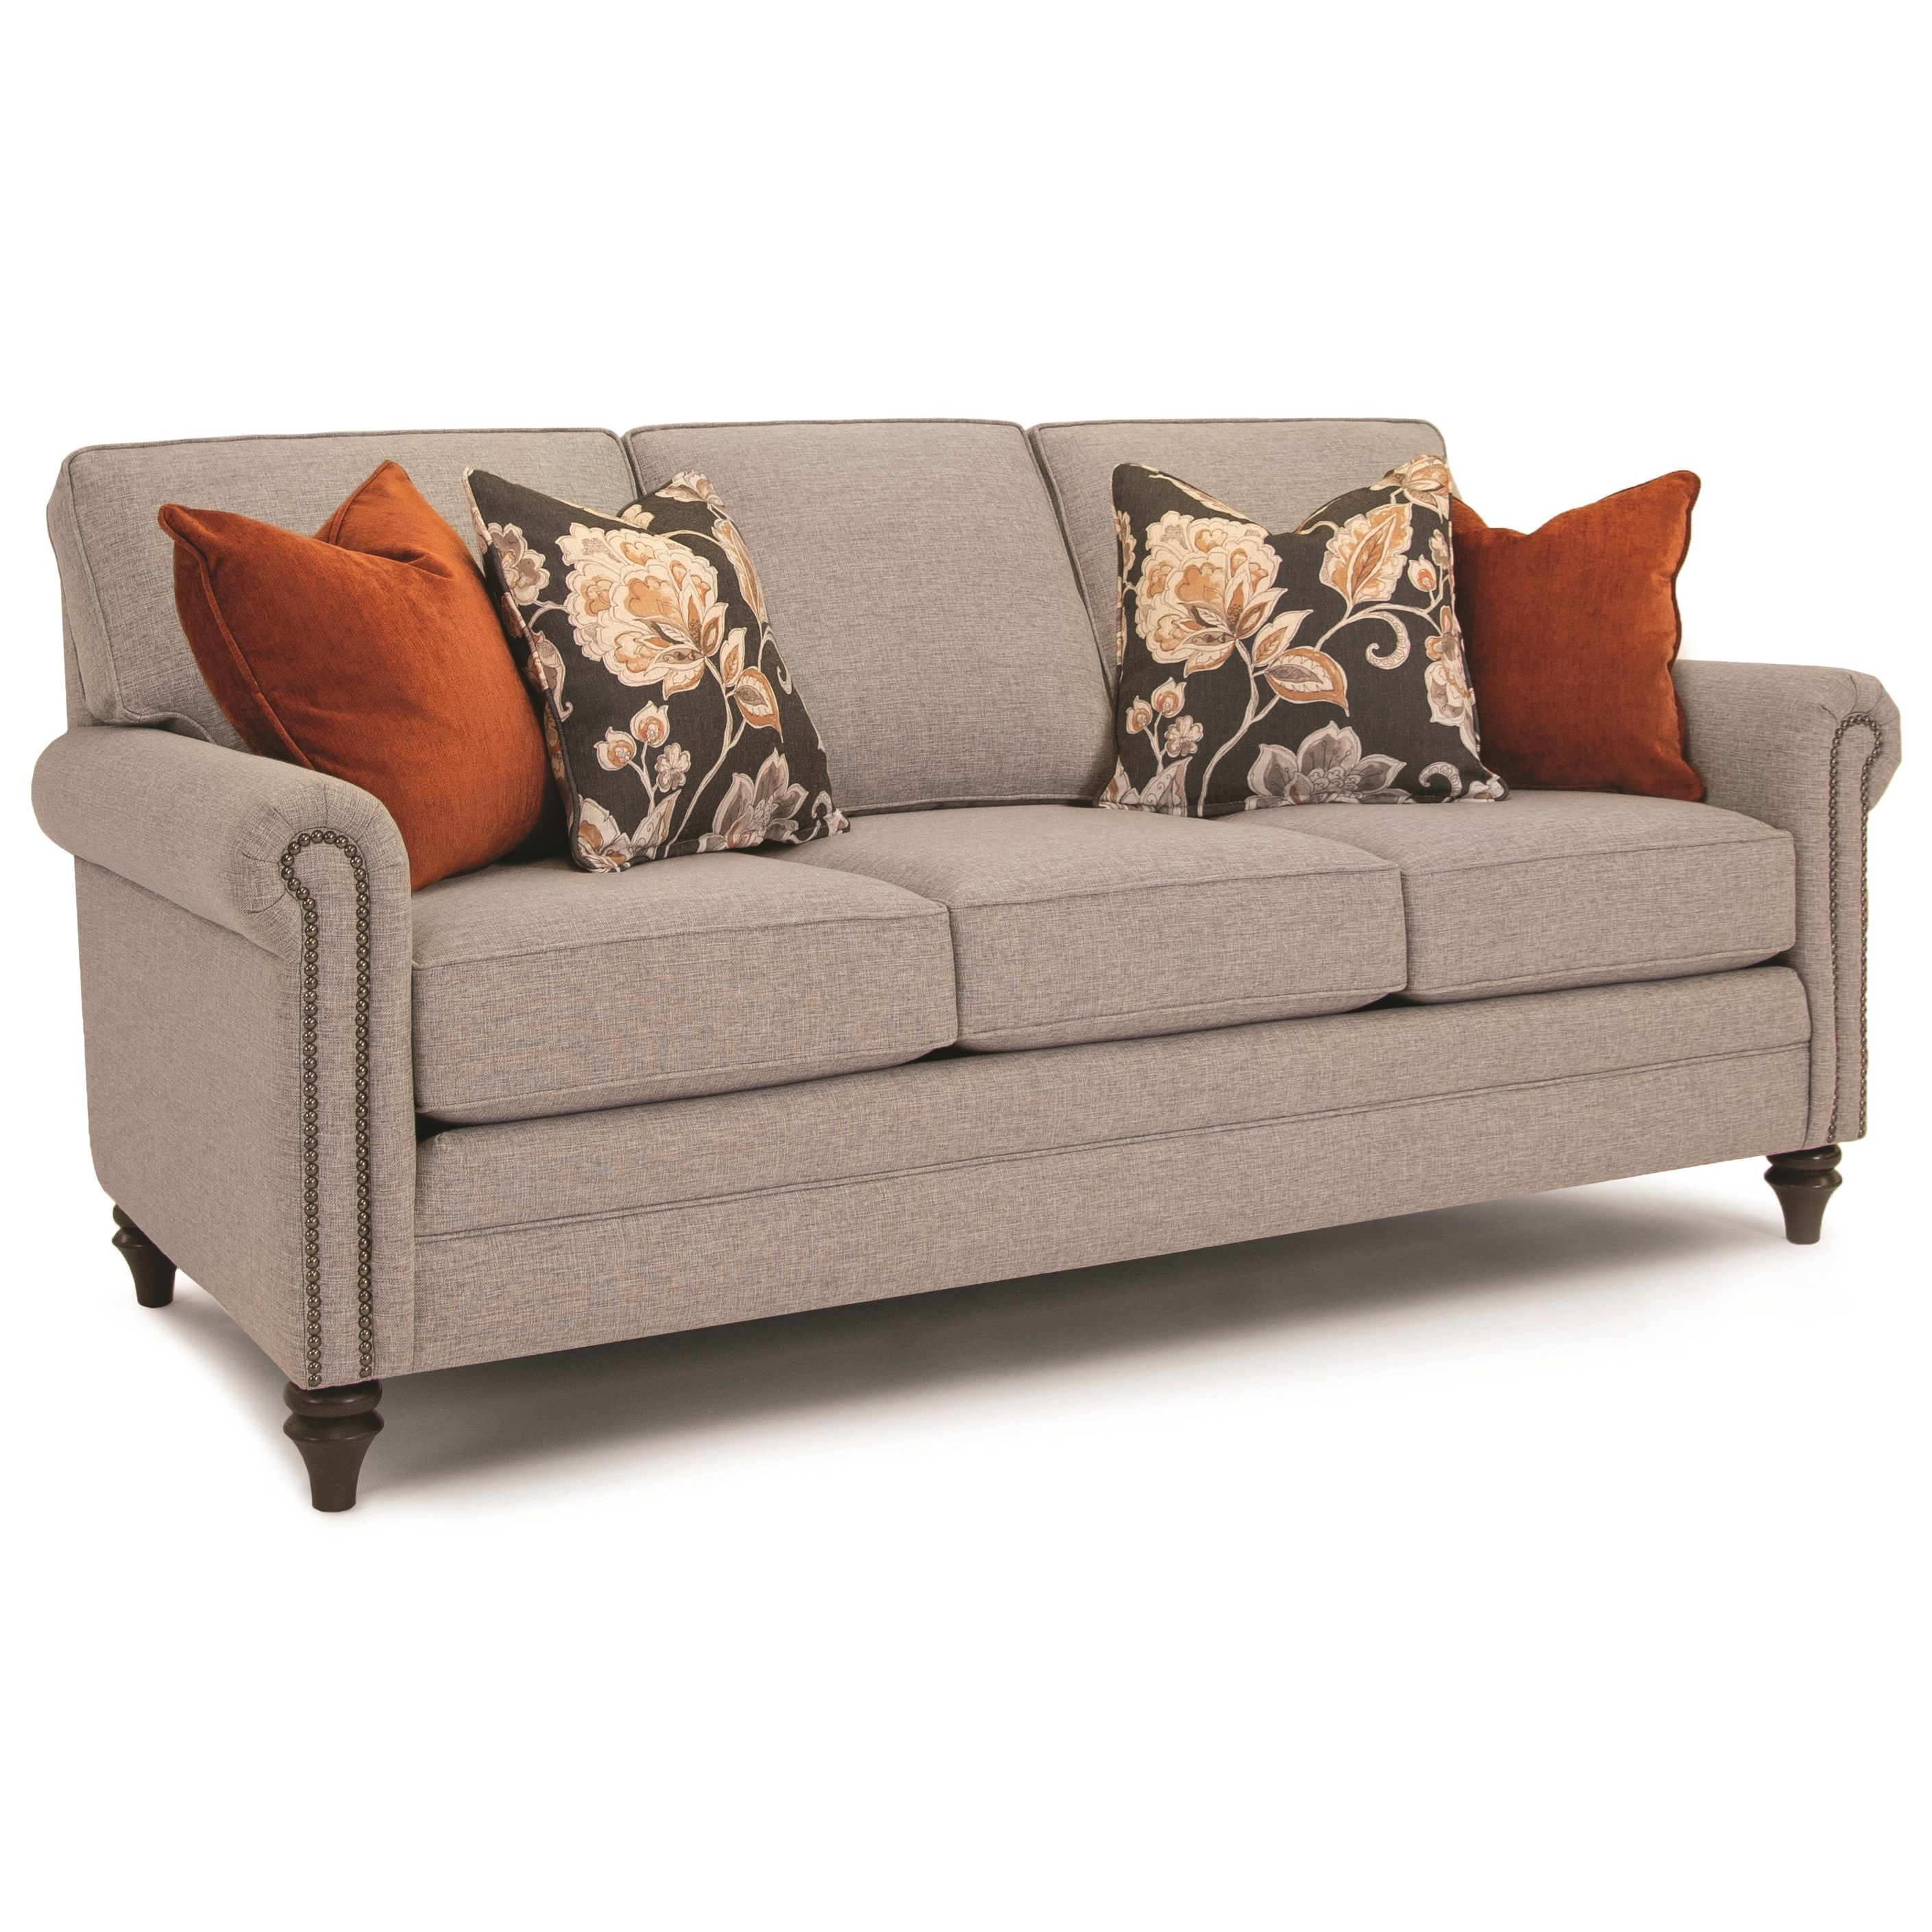 Build Your Own 3000 Series Customizable Sofa by Smith Brothers at Rooms for Less